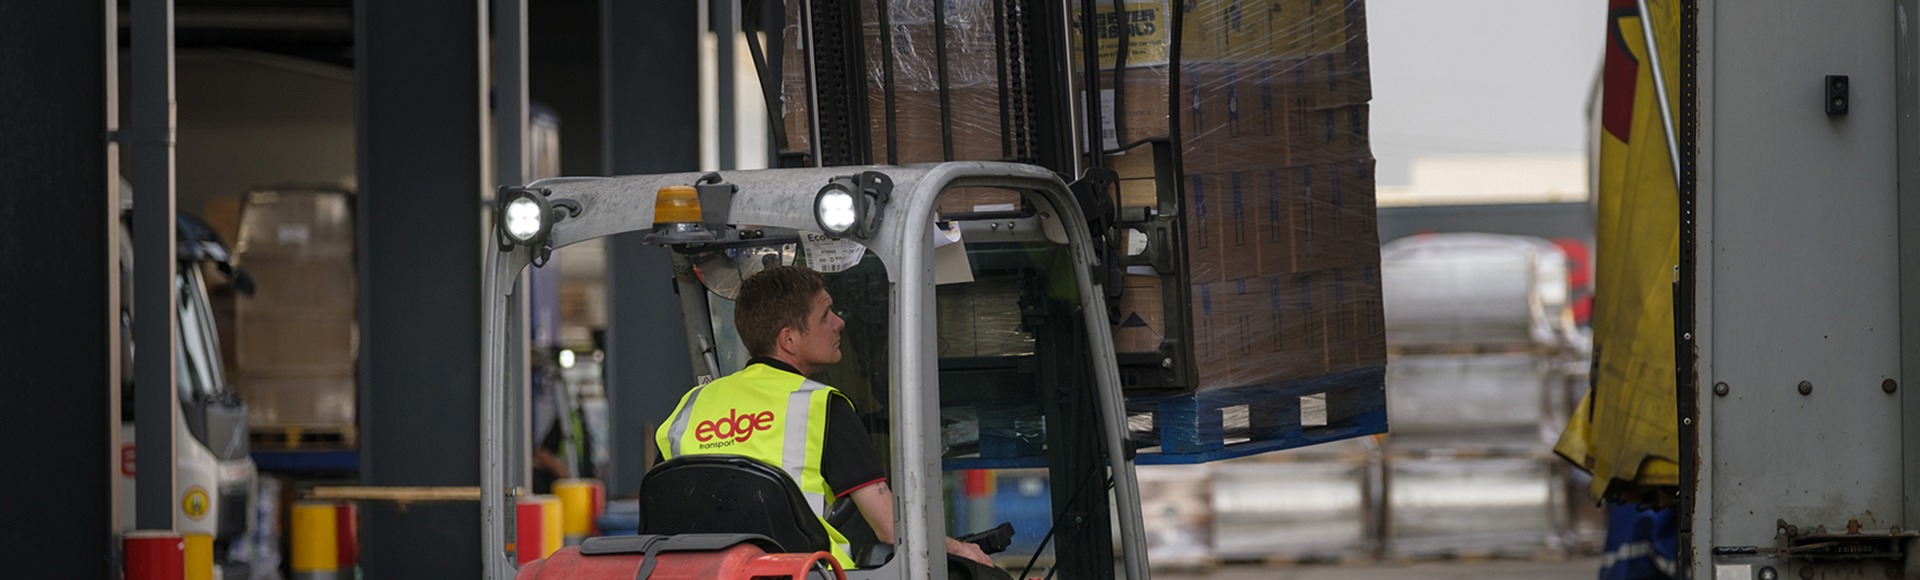 Quality warehouse services in Deeside Flintshire